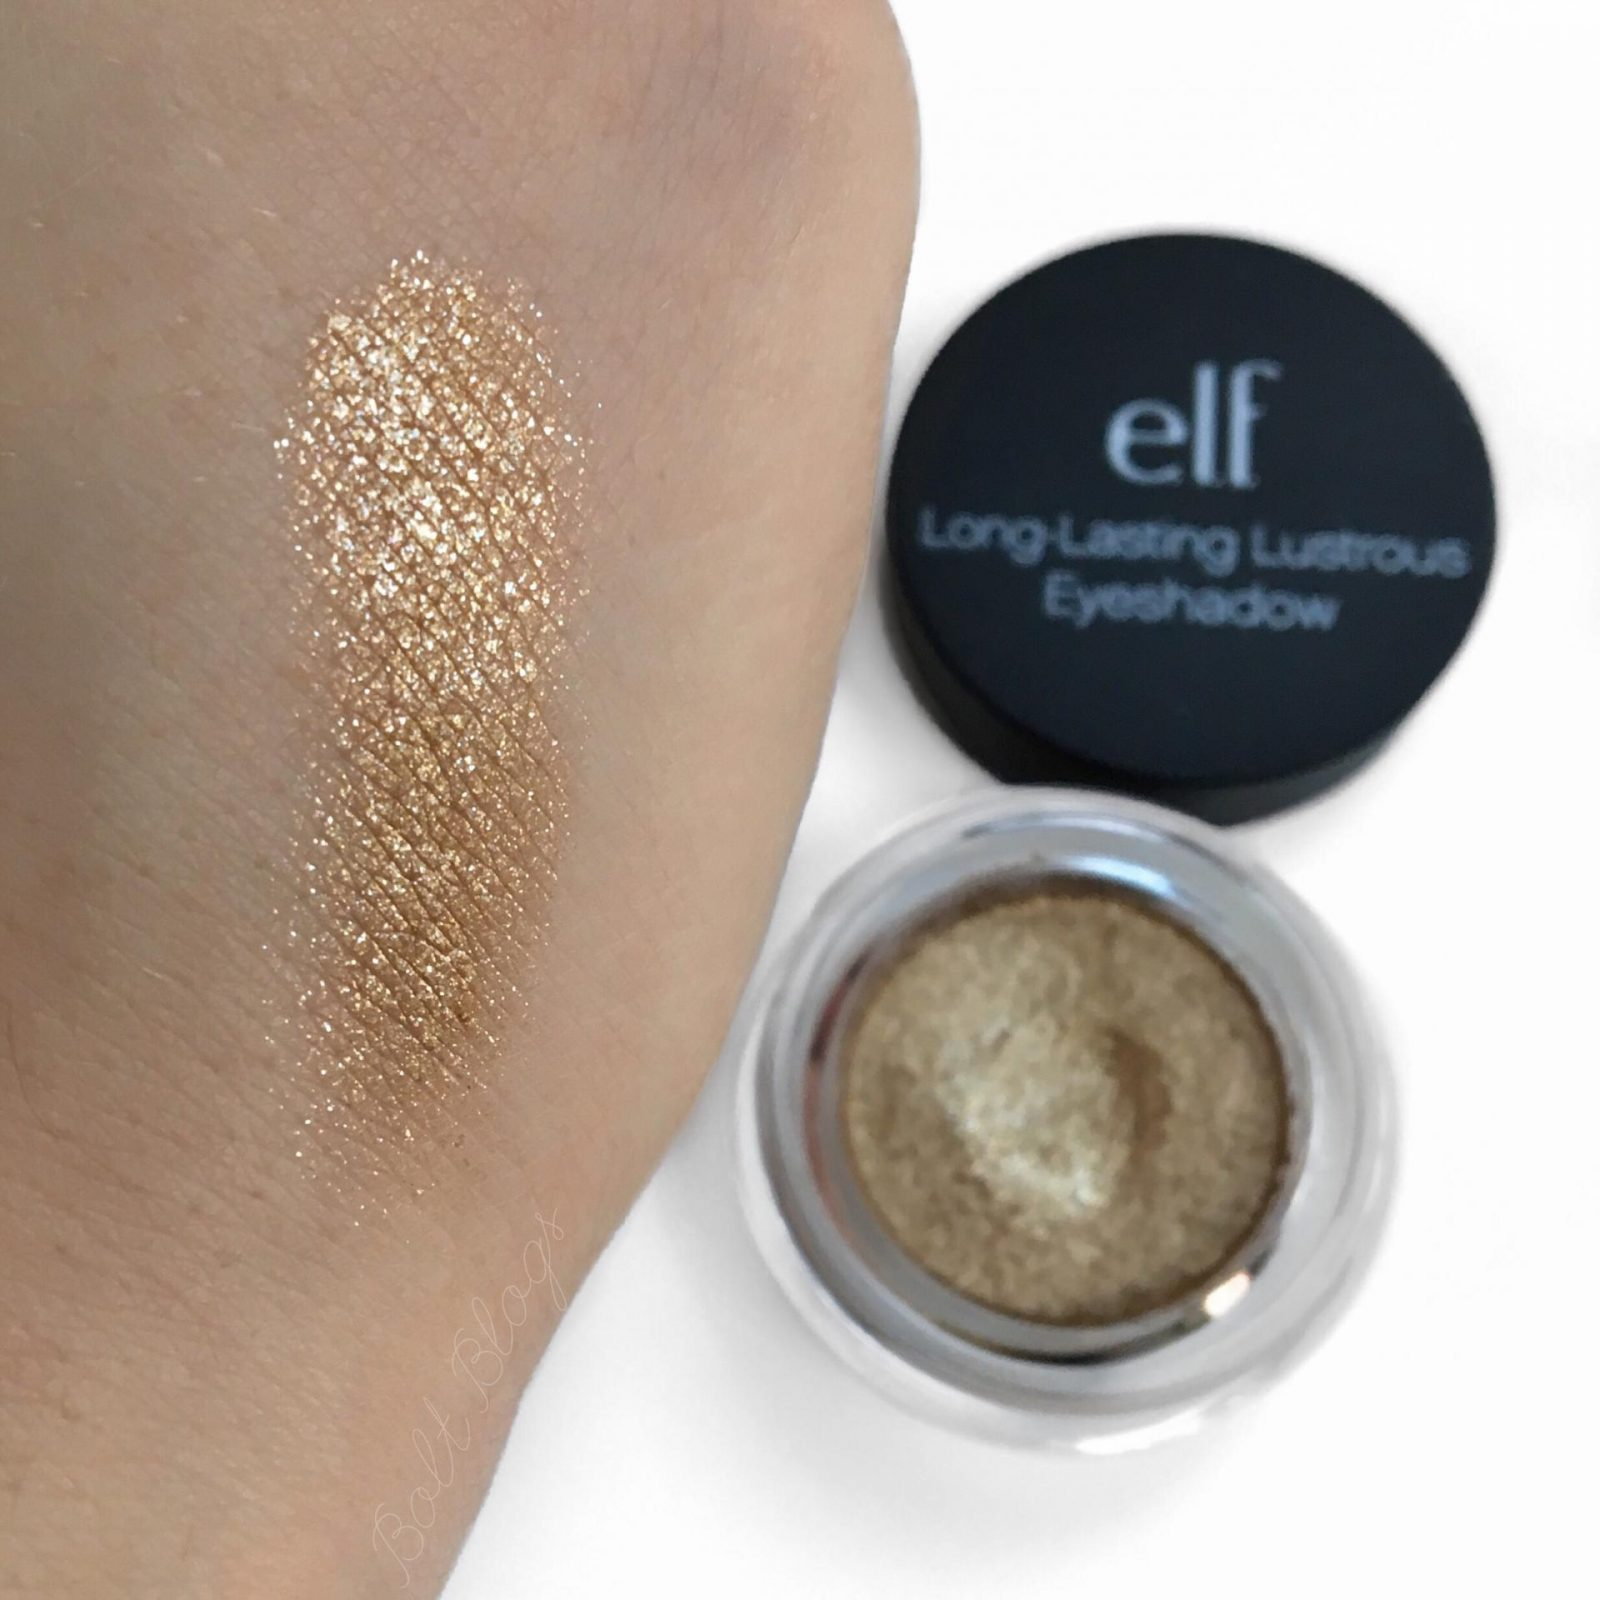 elf Long-Lasting Lustrous Eyeshadow - Toast swatch